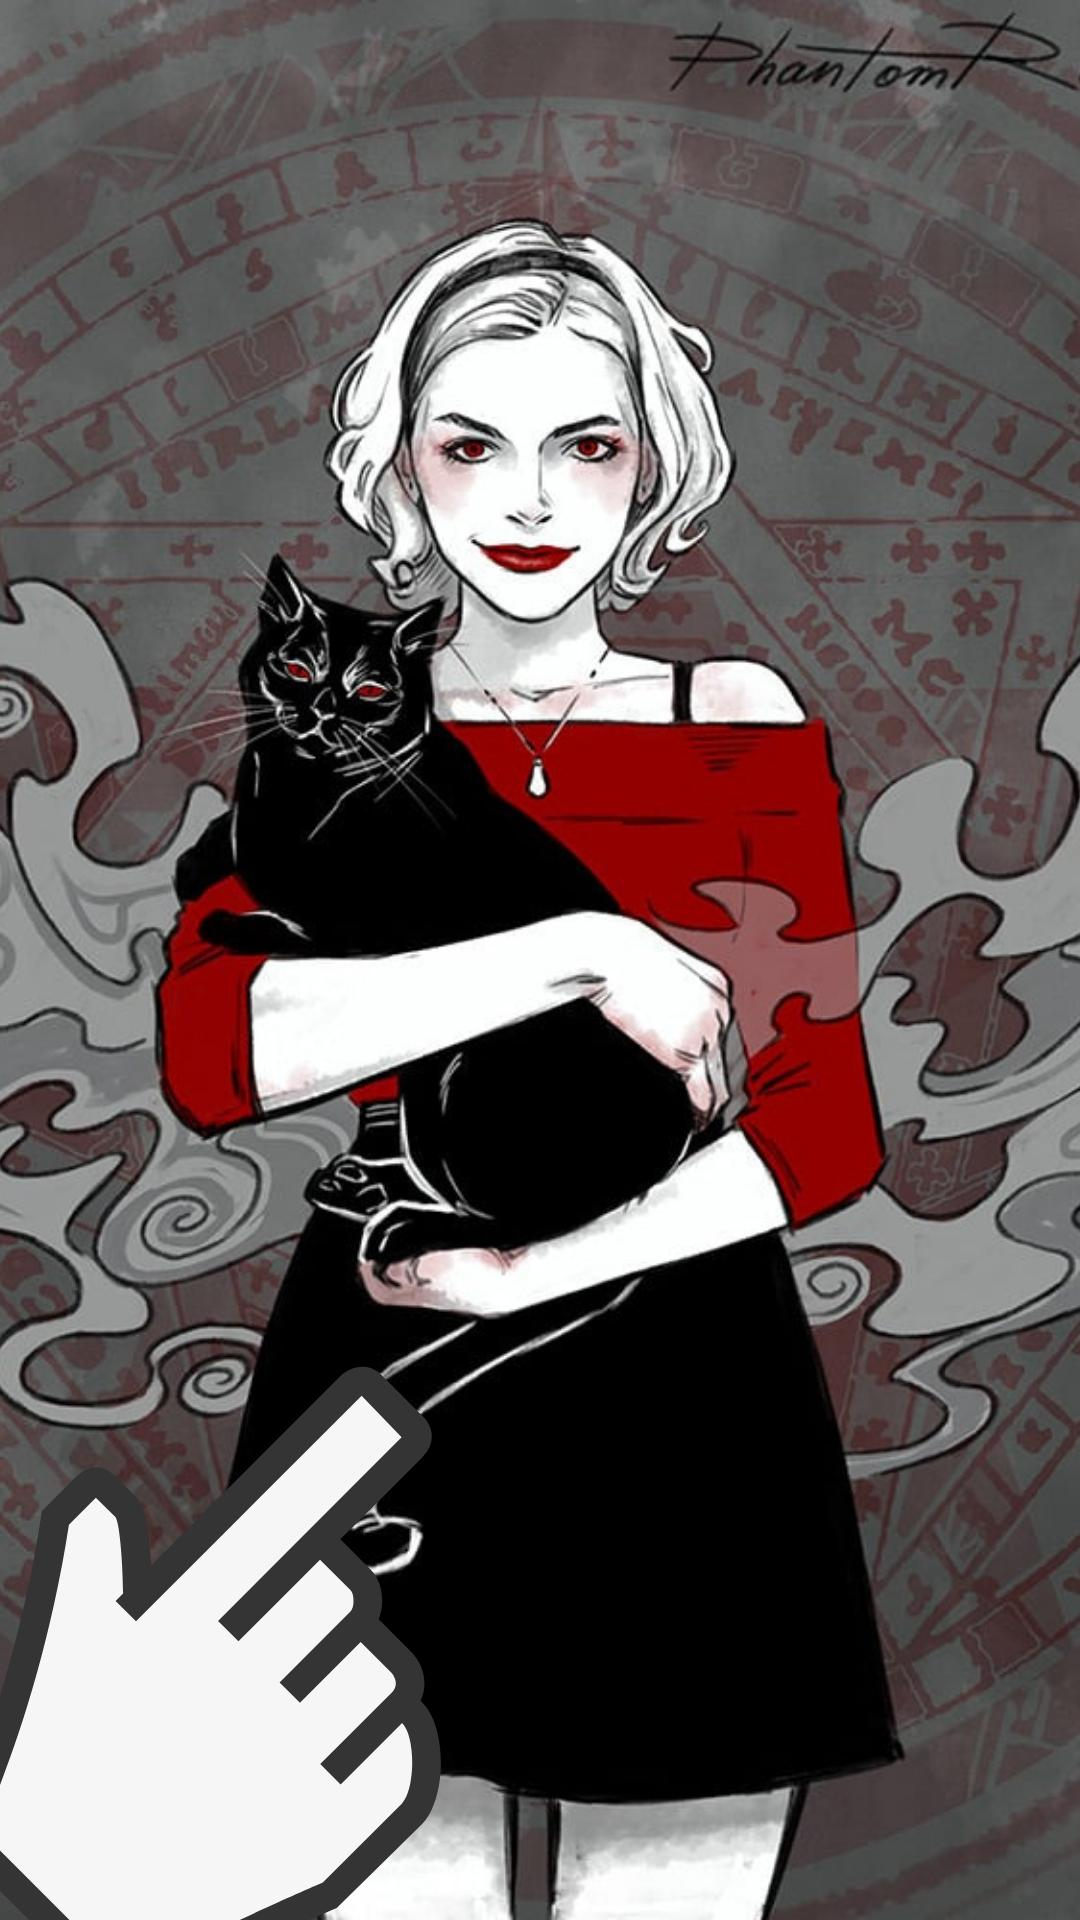 Sabrina Hd Wallpapers For Android Apk Download